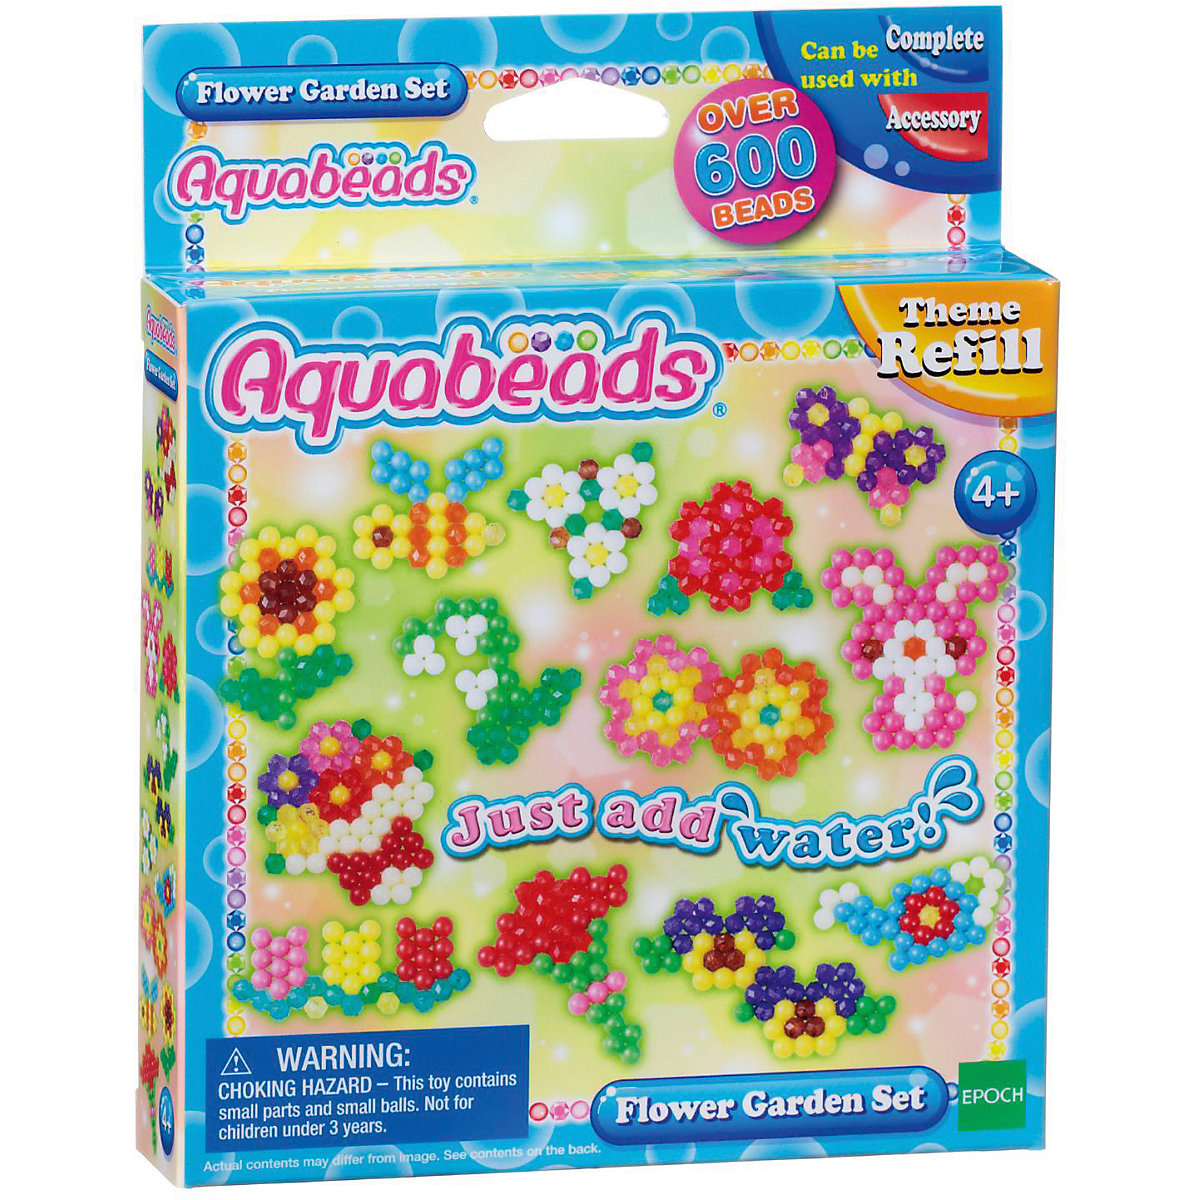 Aquabeads Beads Toys 7966839 Creativity Needlework For Children Set Kids Toy Hobbis Arts Crafts DIY